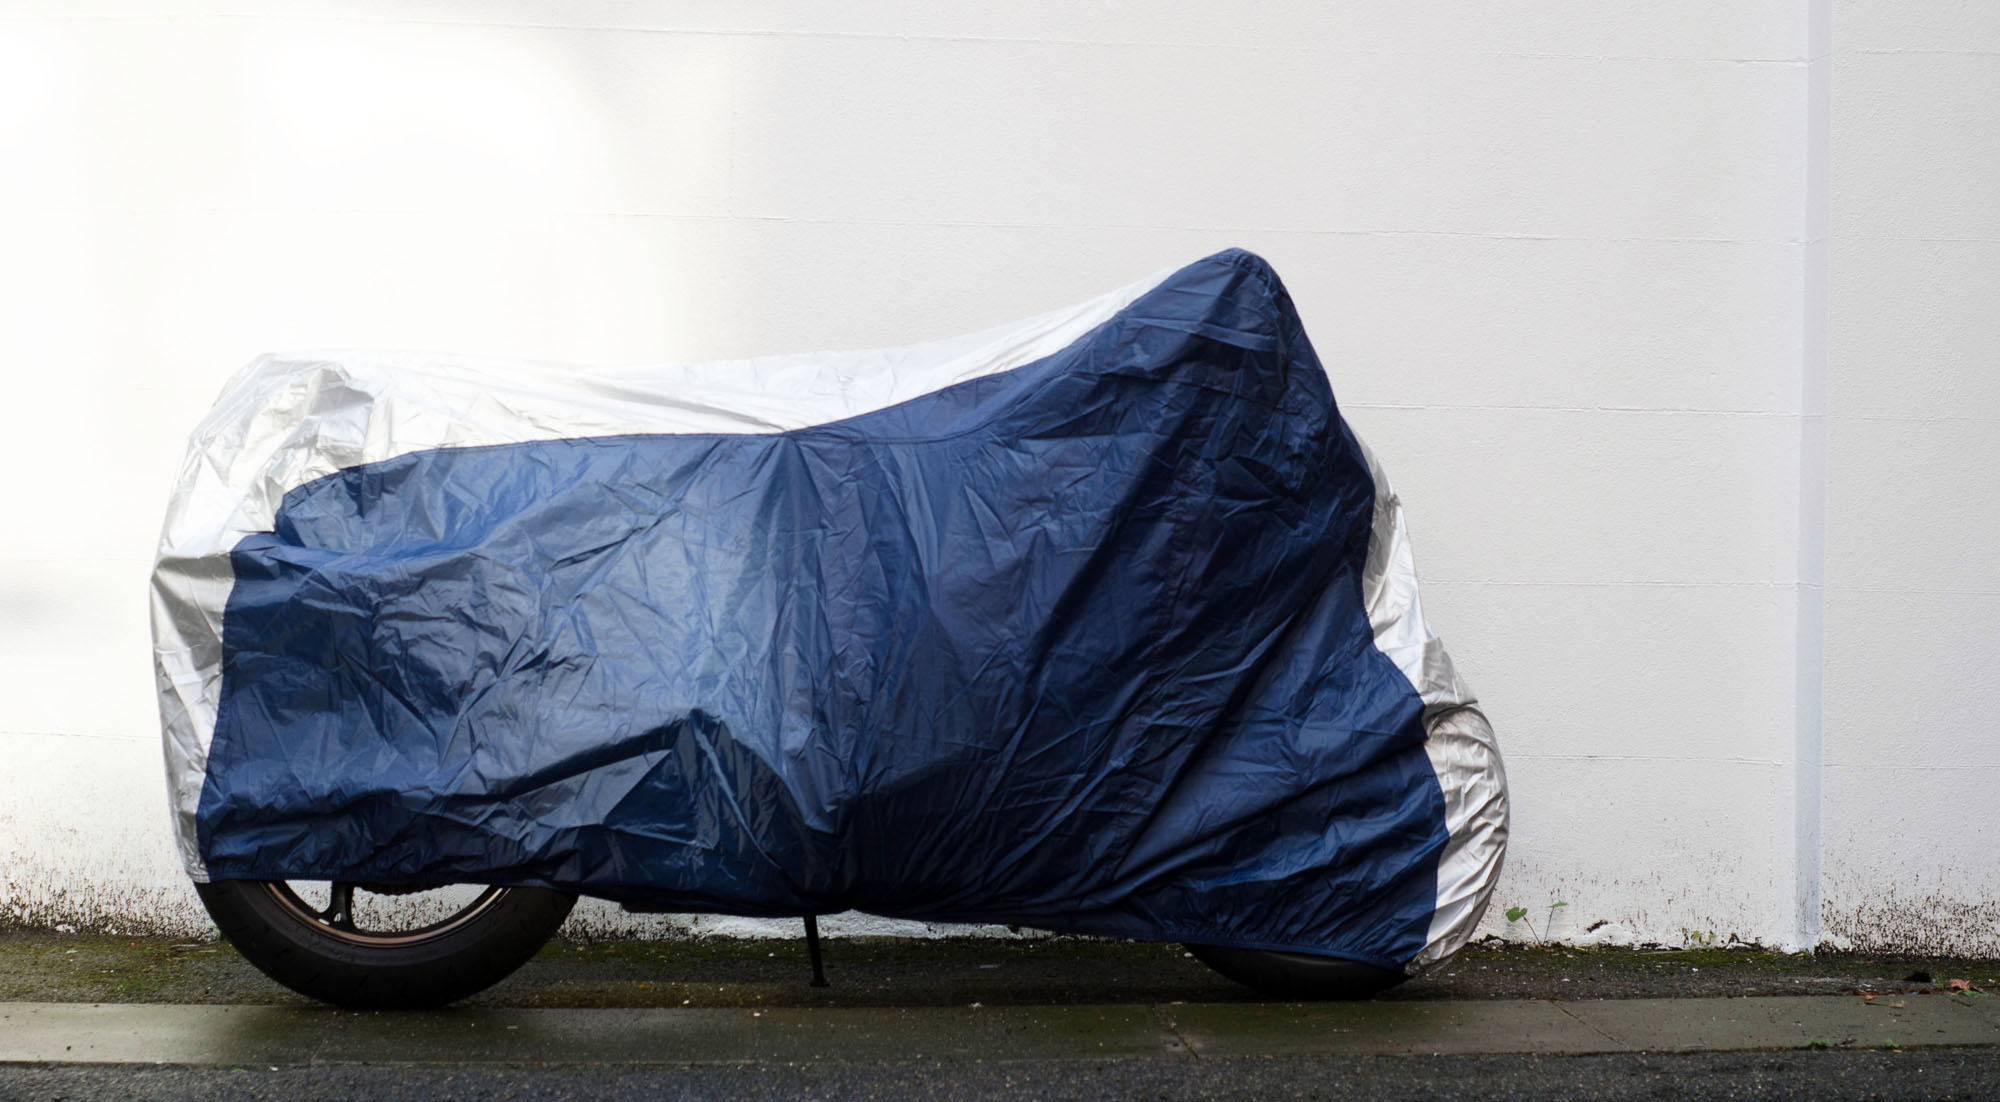 Motorcycle Covers Product : Showcase outdoor motorcycle covers argos deluxe